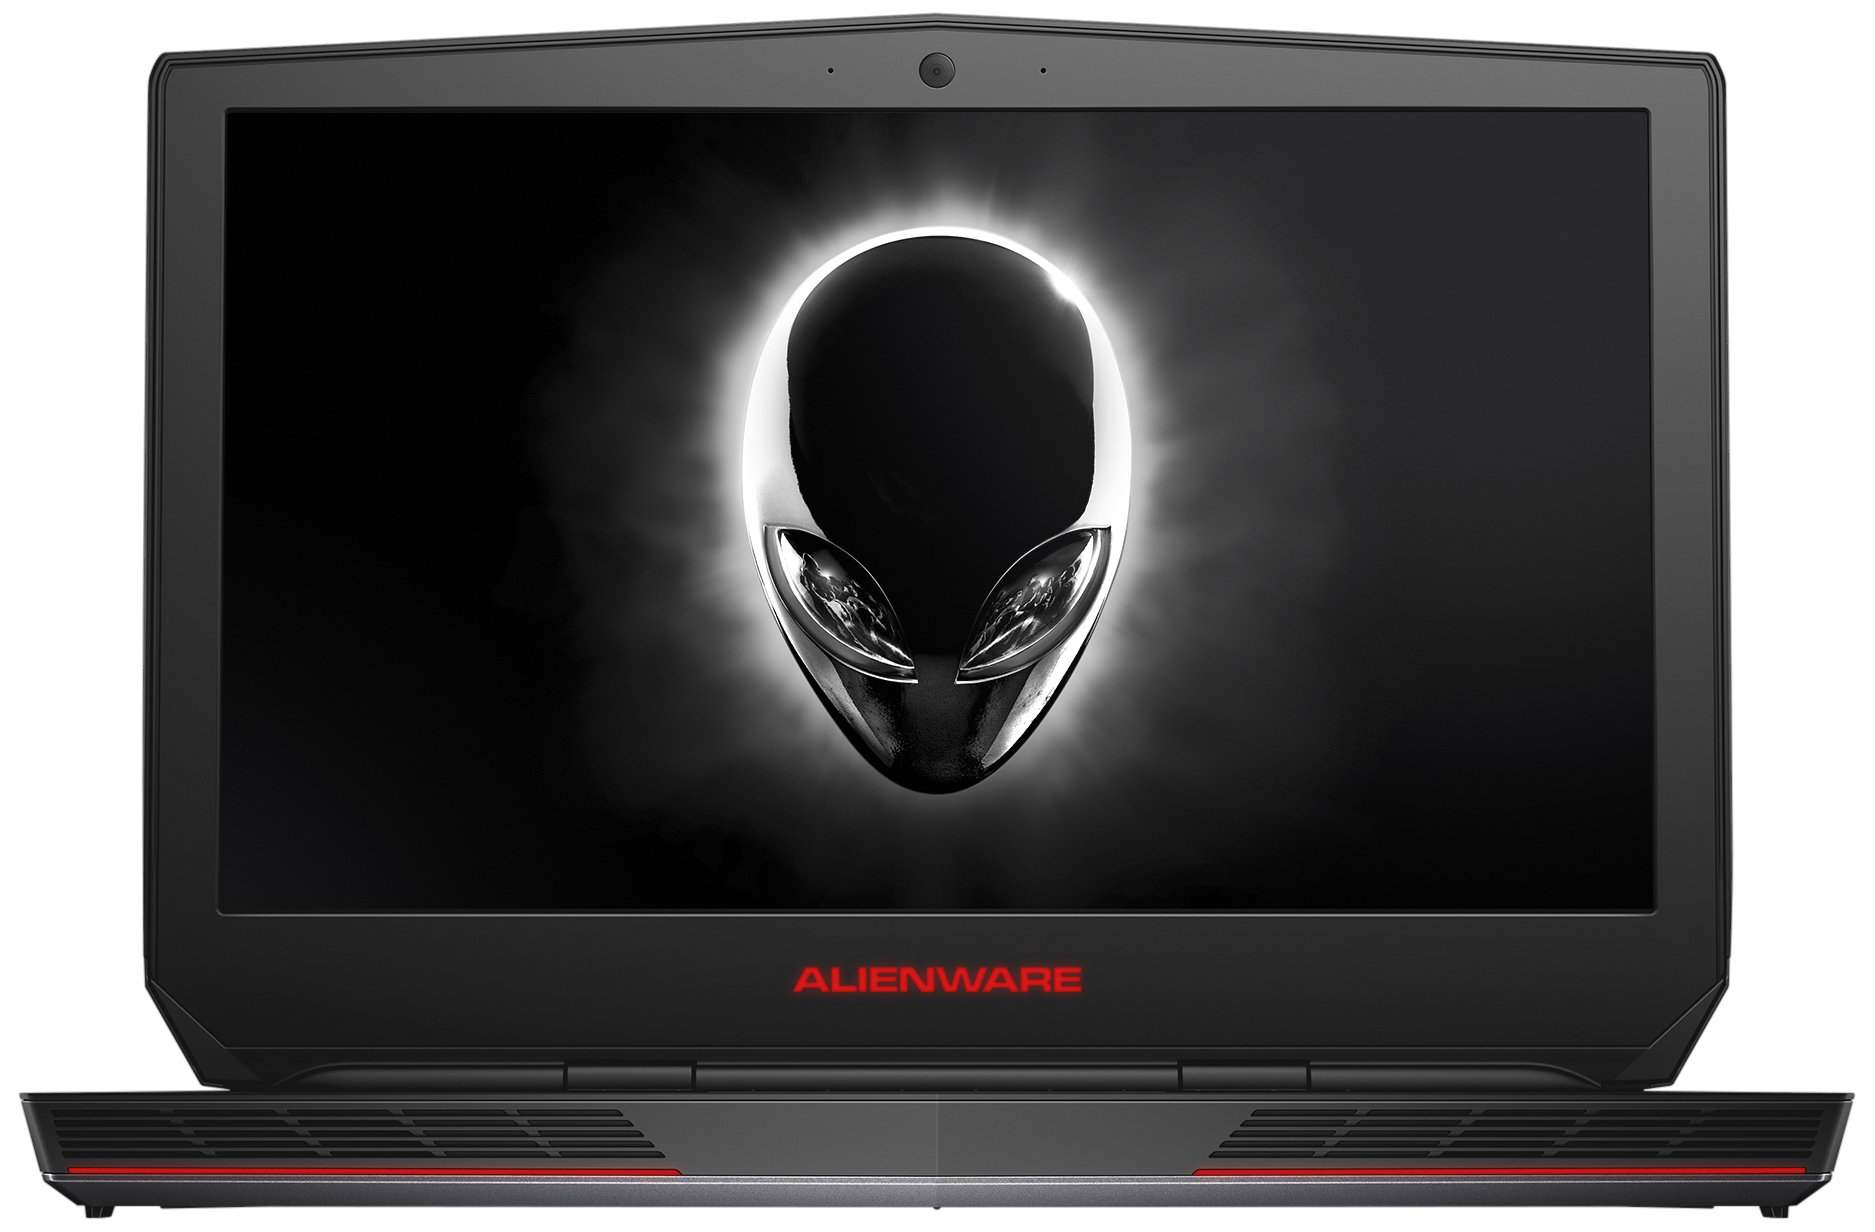 Alienware AW15R2-8469SLV 15.6-Inch UHD Laptop (6th Generation Intel Core i7, 16 GB RAM, 1 TB HDD + 256 GB SATA SSD) NVIDIA GeForce GTX 970M, Microsoft Signature Edition, Windows 10 Home), Silver